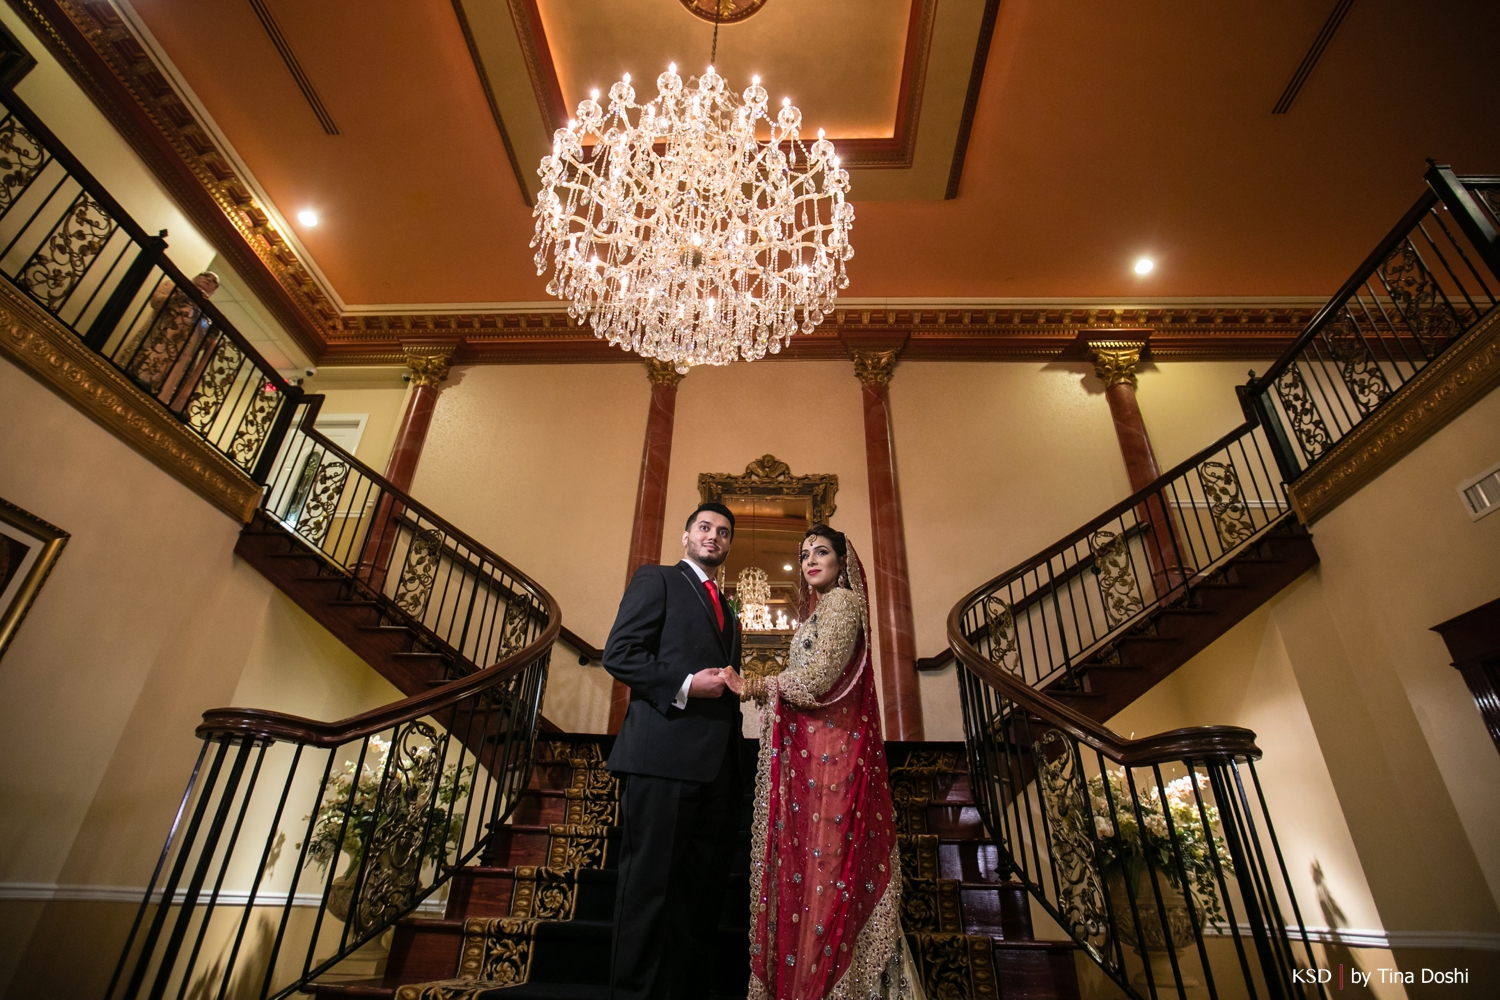 nj_south_asian_wedding_0078